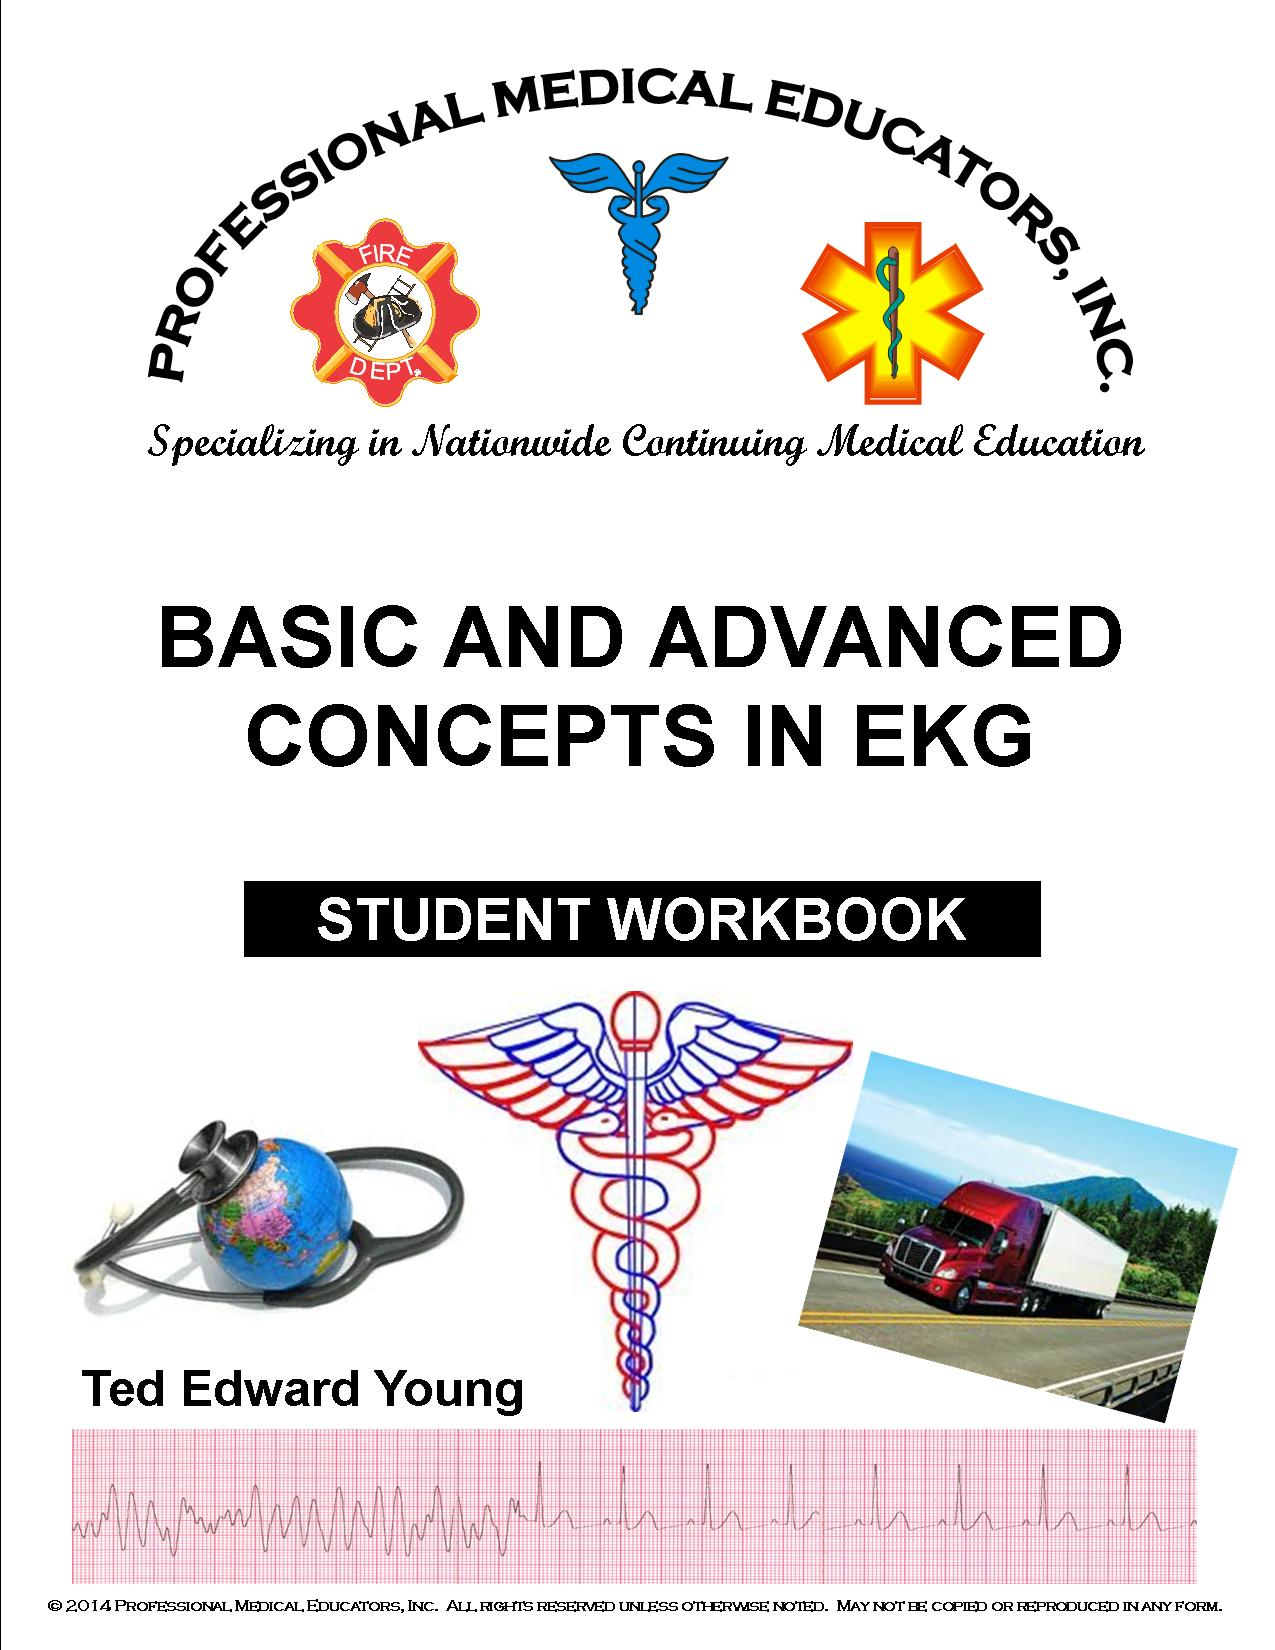 BASIC AND ADVANCED CONCEPTS IN EKG